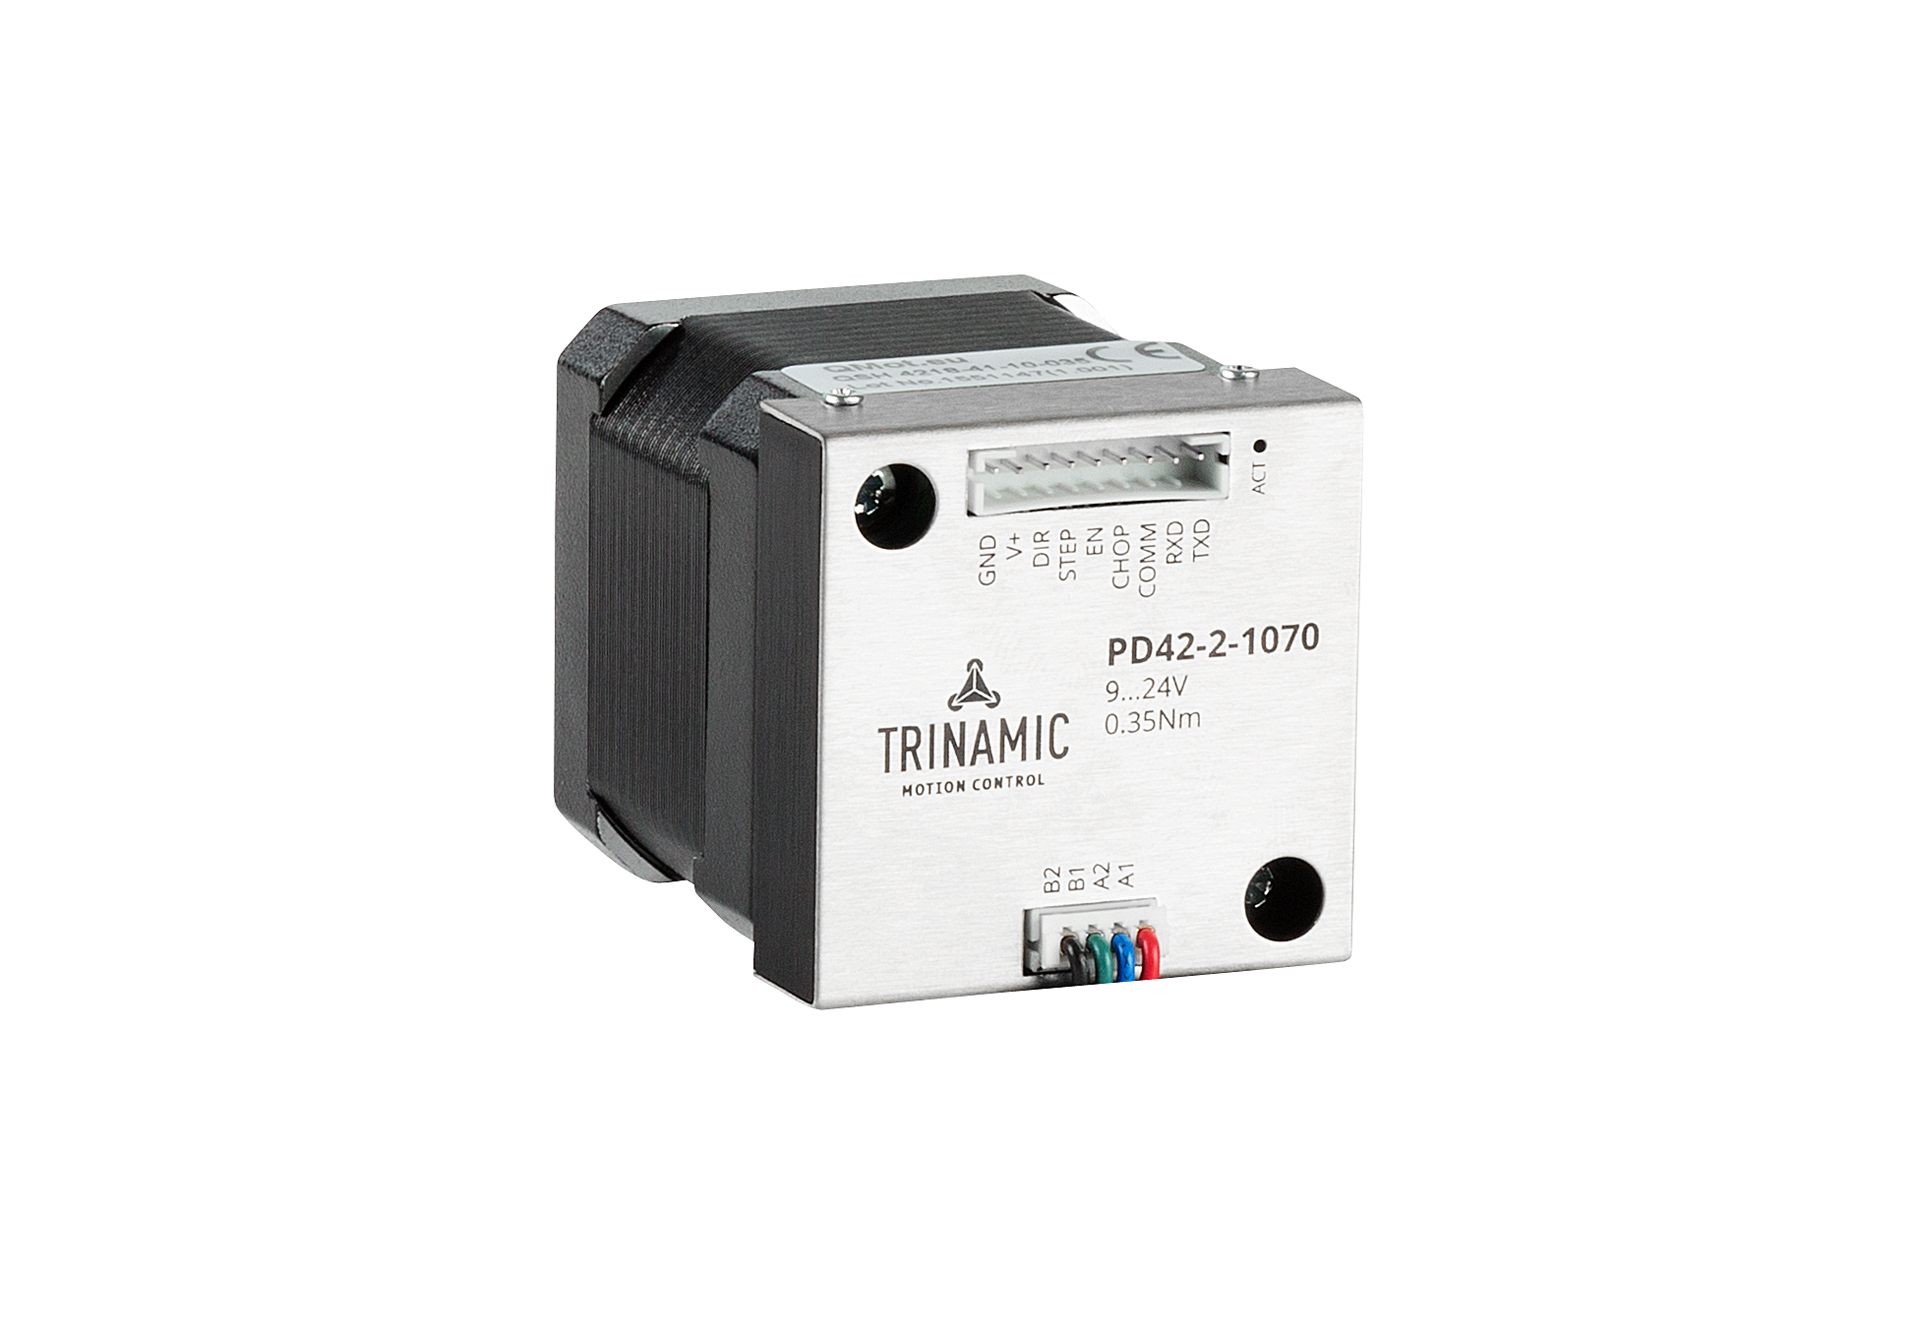 TRINAMIC Motion Control - PANdrive PD42-2-1070